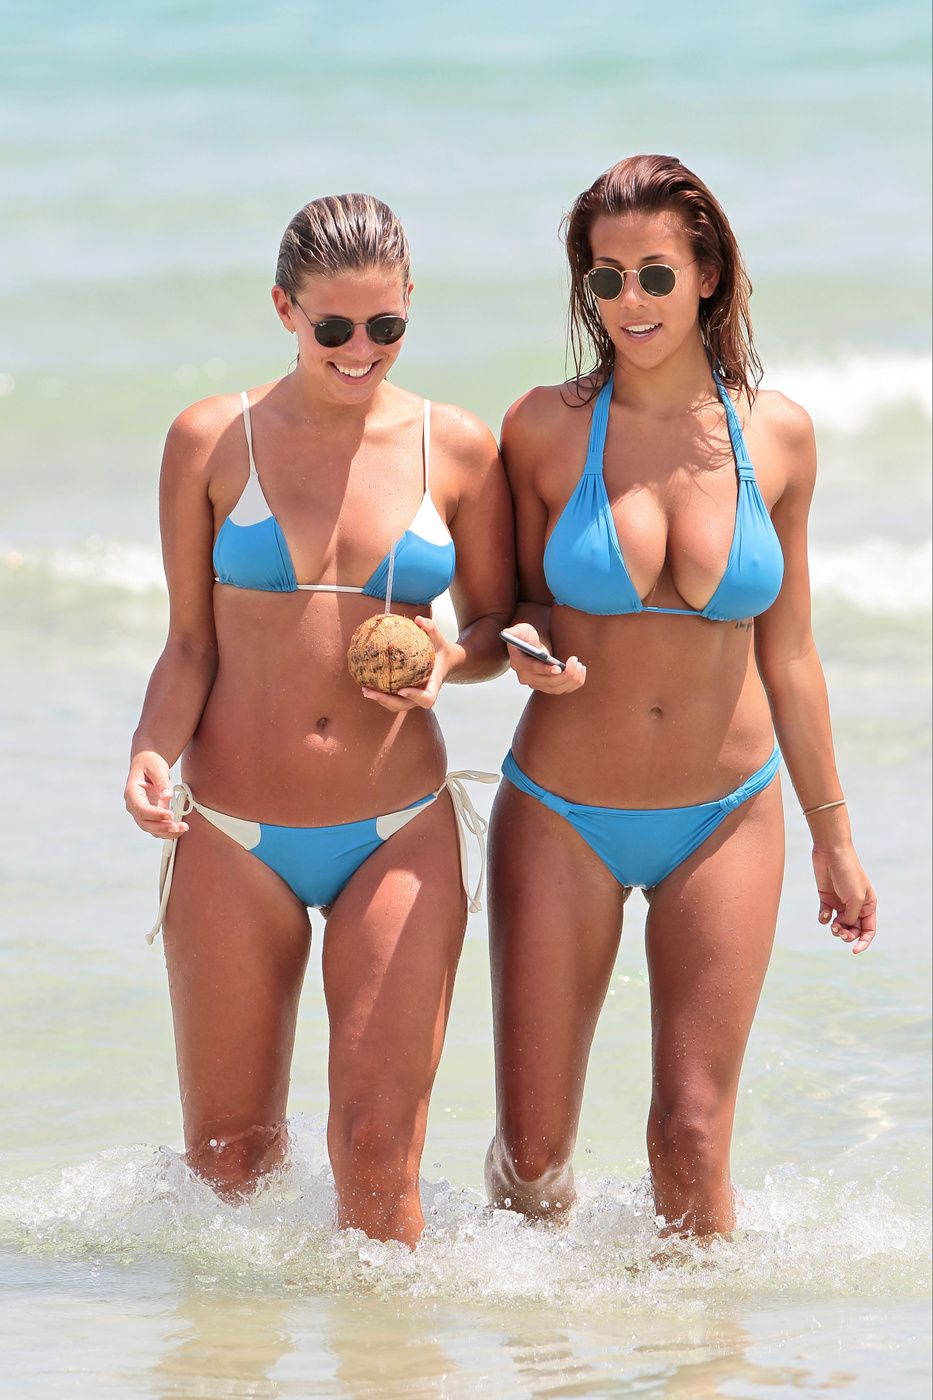 Devin-Brugman-and-Natasha-Oakley-in-a-Bikini-6